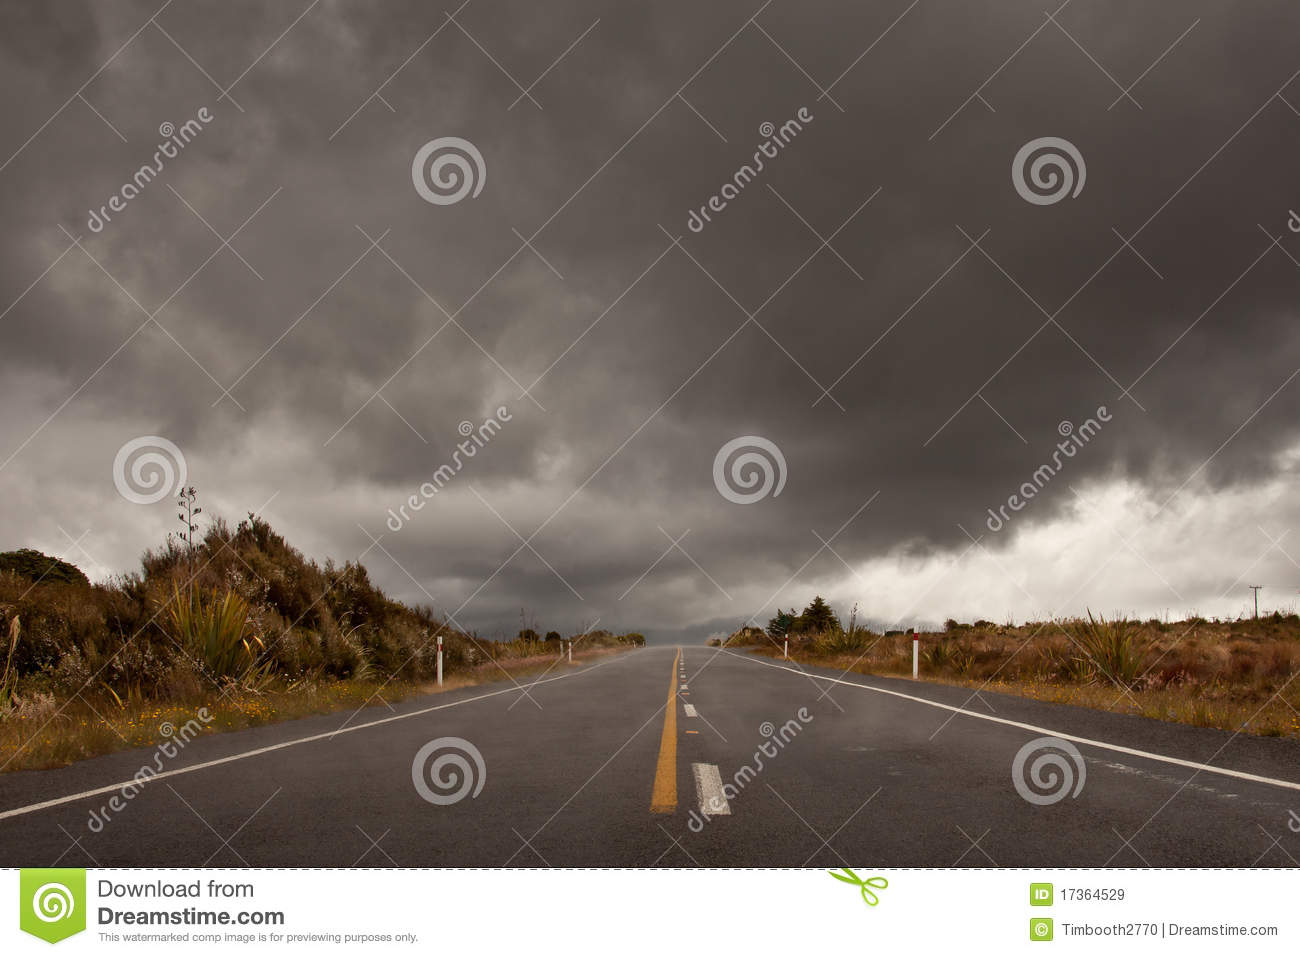 Wet road leading into a storm cloudy sky